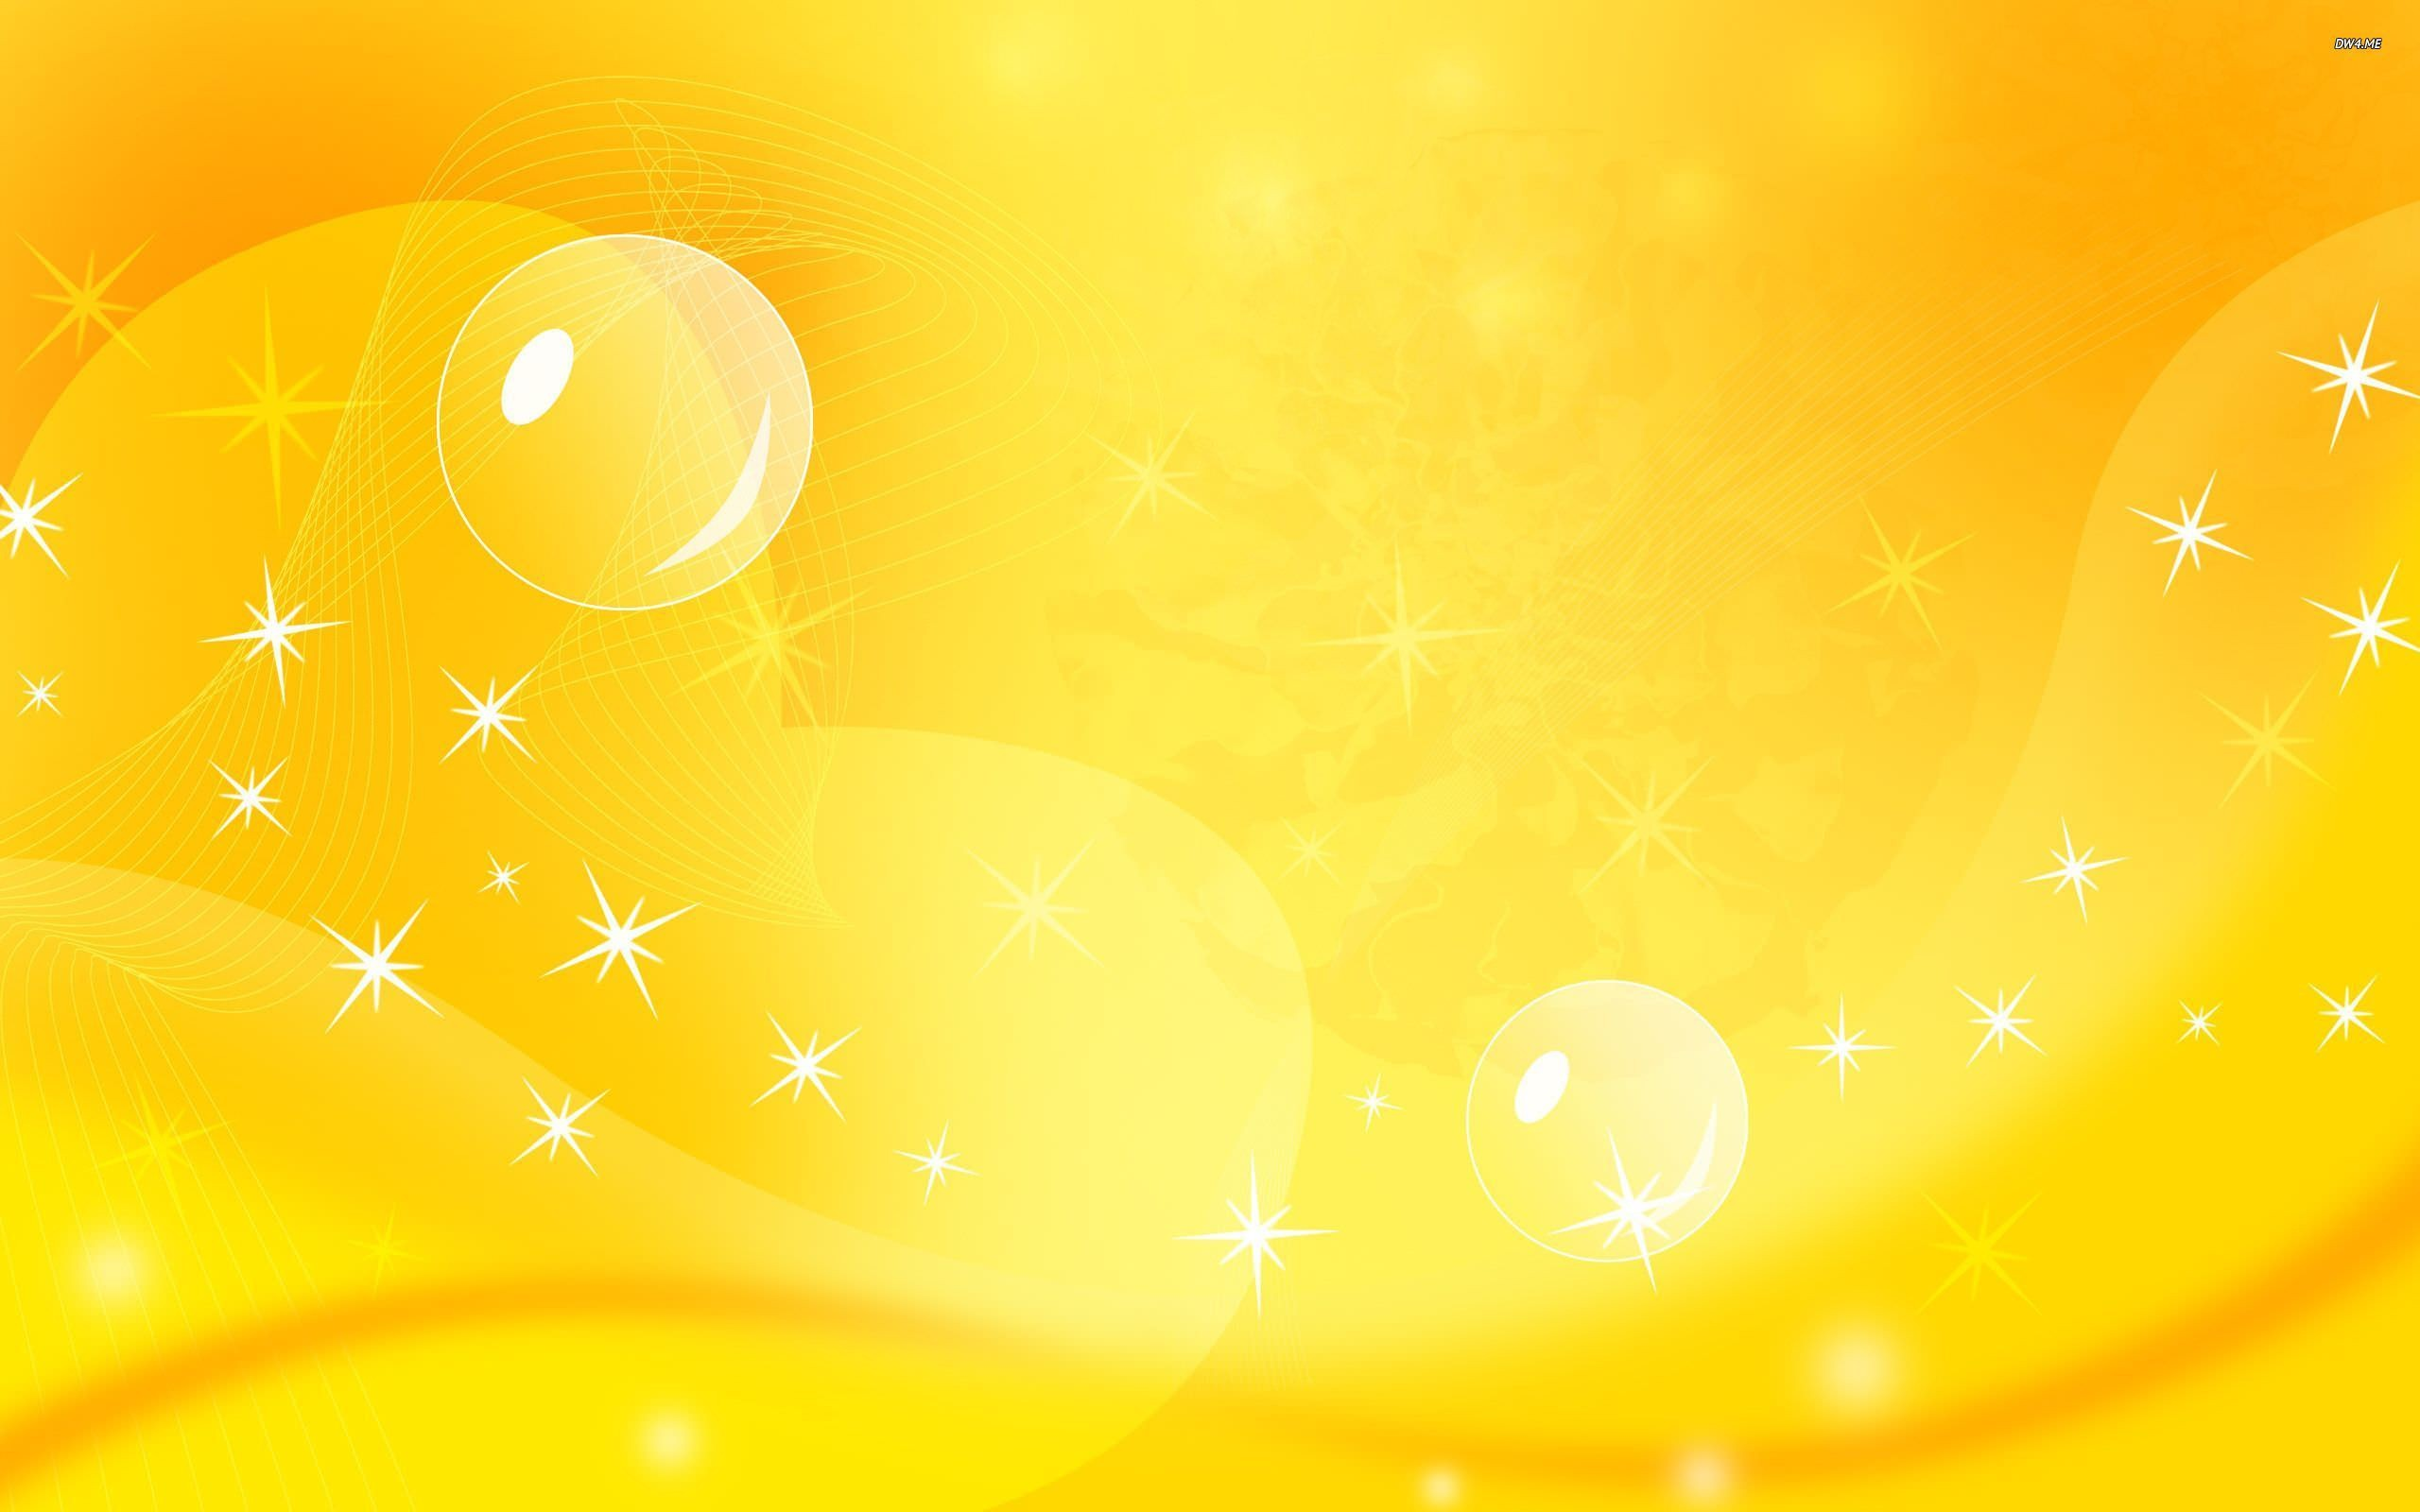 Space Wallpaper Full Hd 50 Yellow Backgrounds 183 ① Download Free Amazing Full Hd